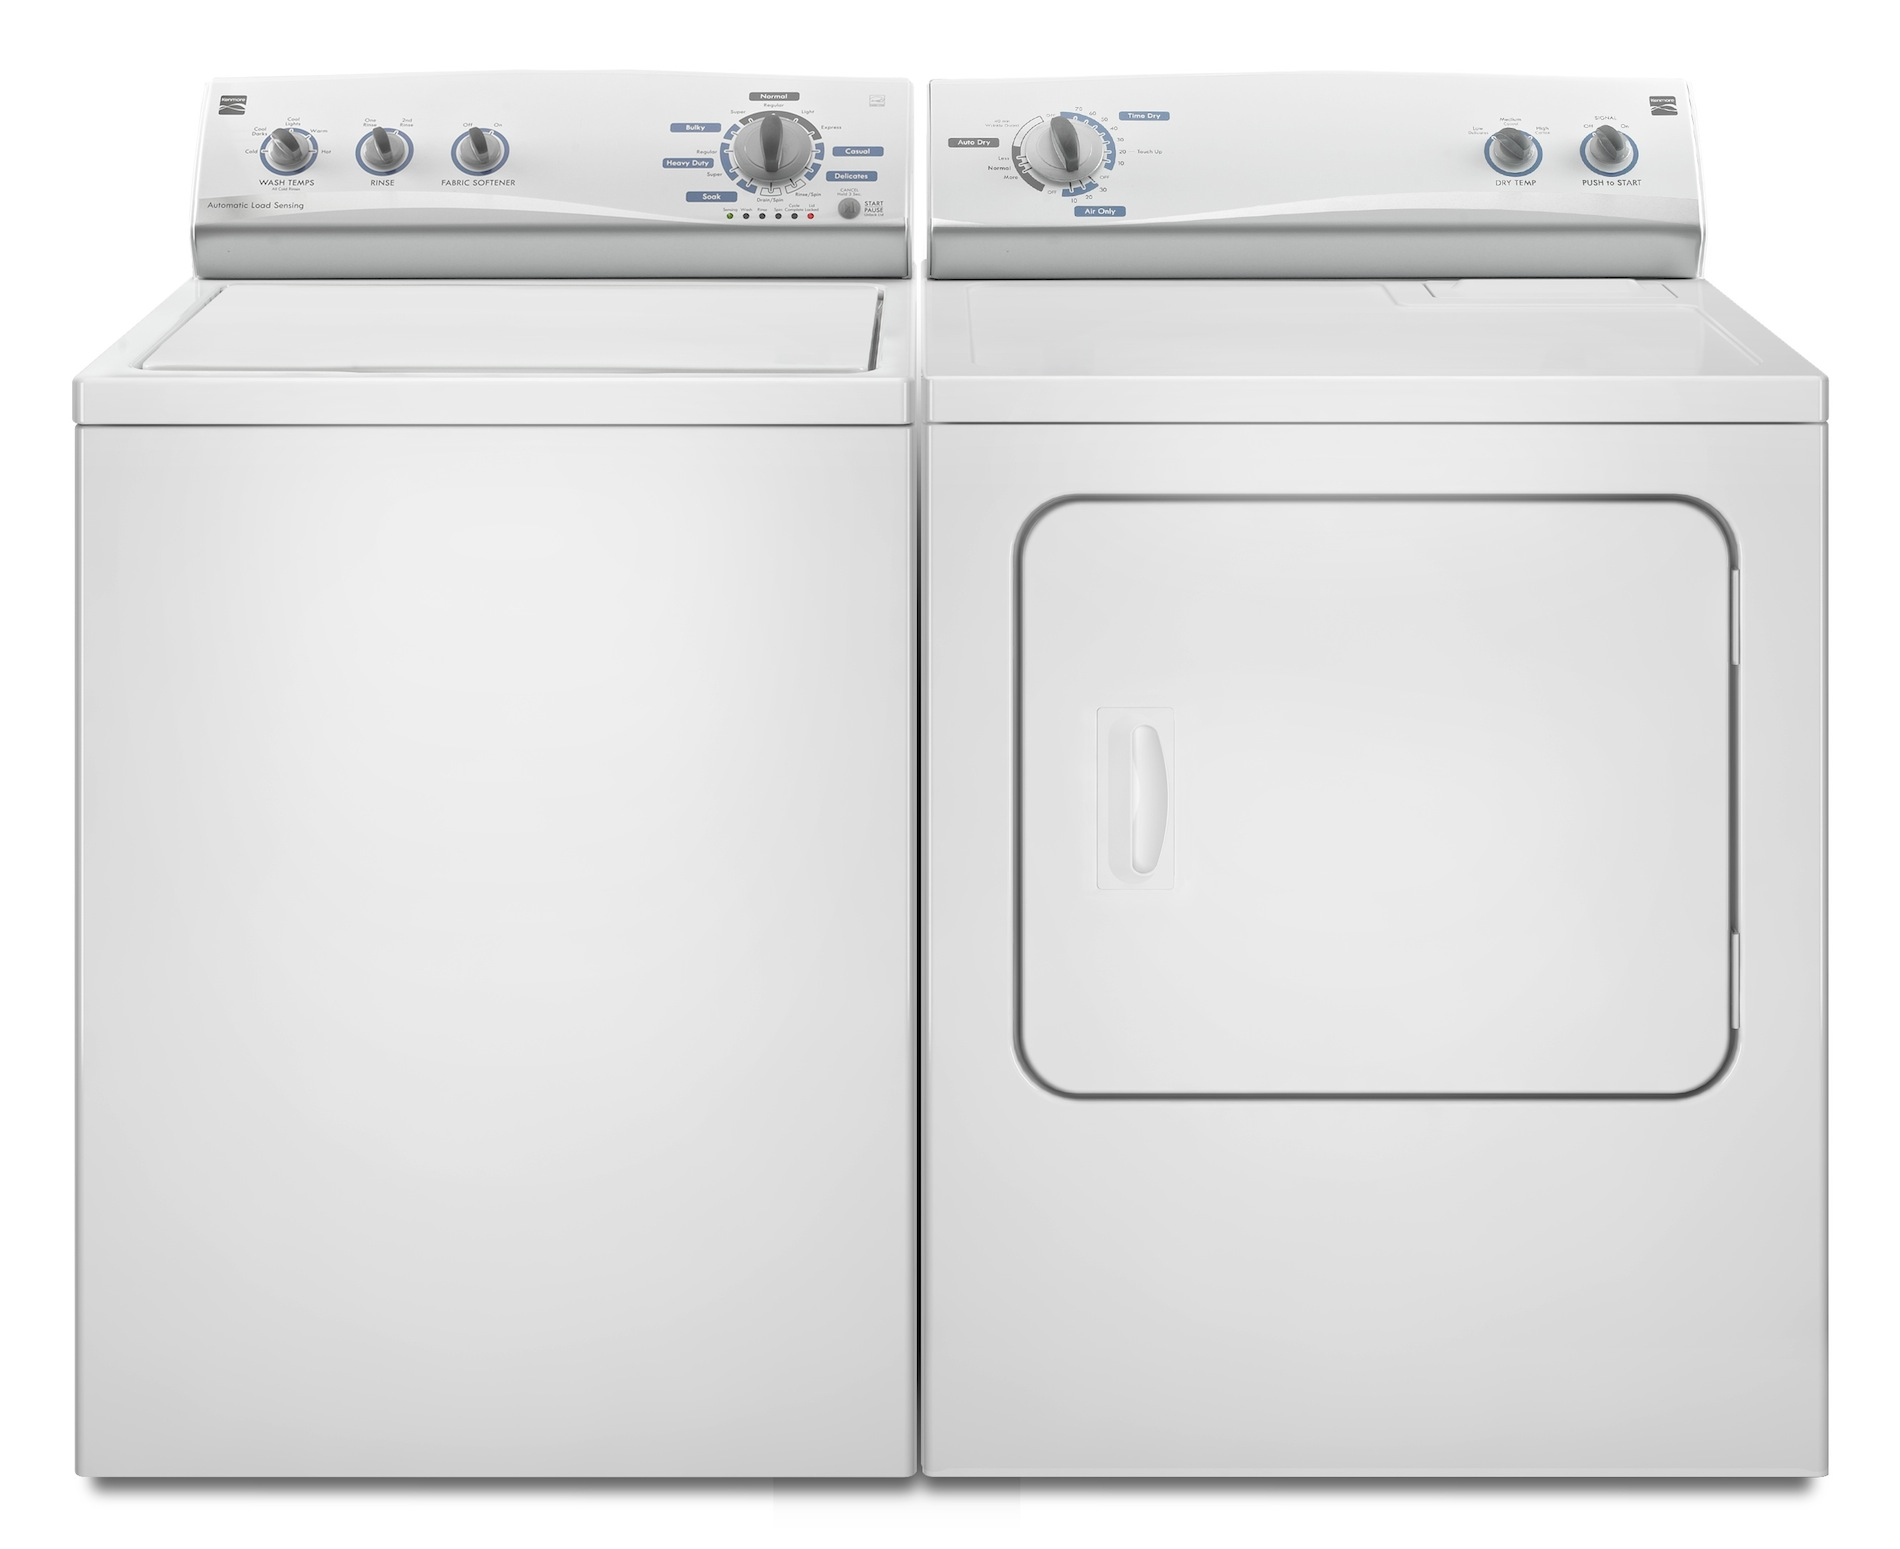 Kenmore 7.0 cu. ft. Gas Dryer w/ Wrinkle Guard® - White